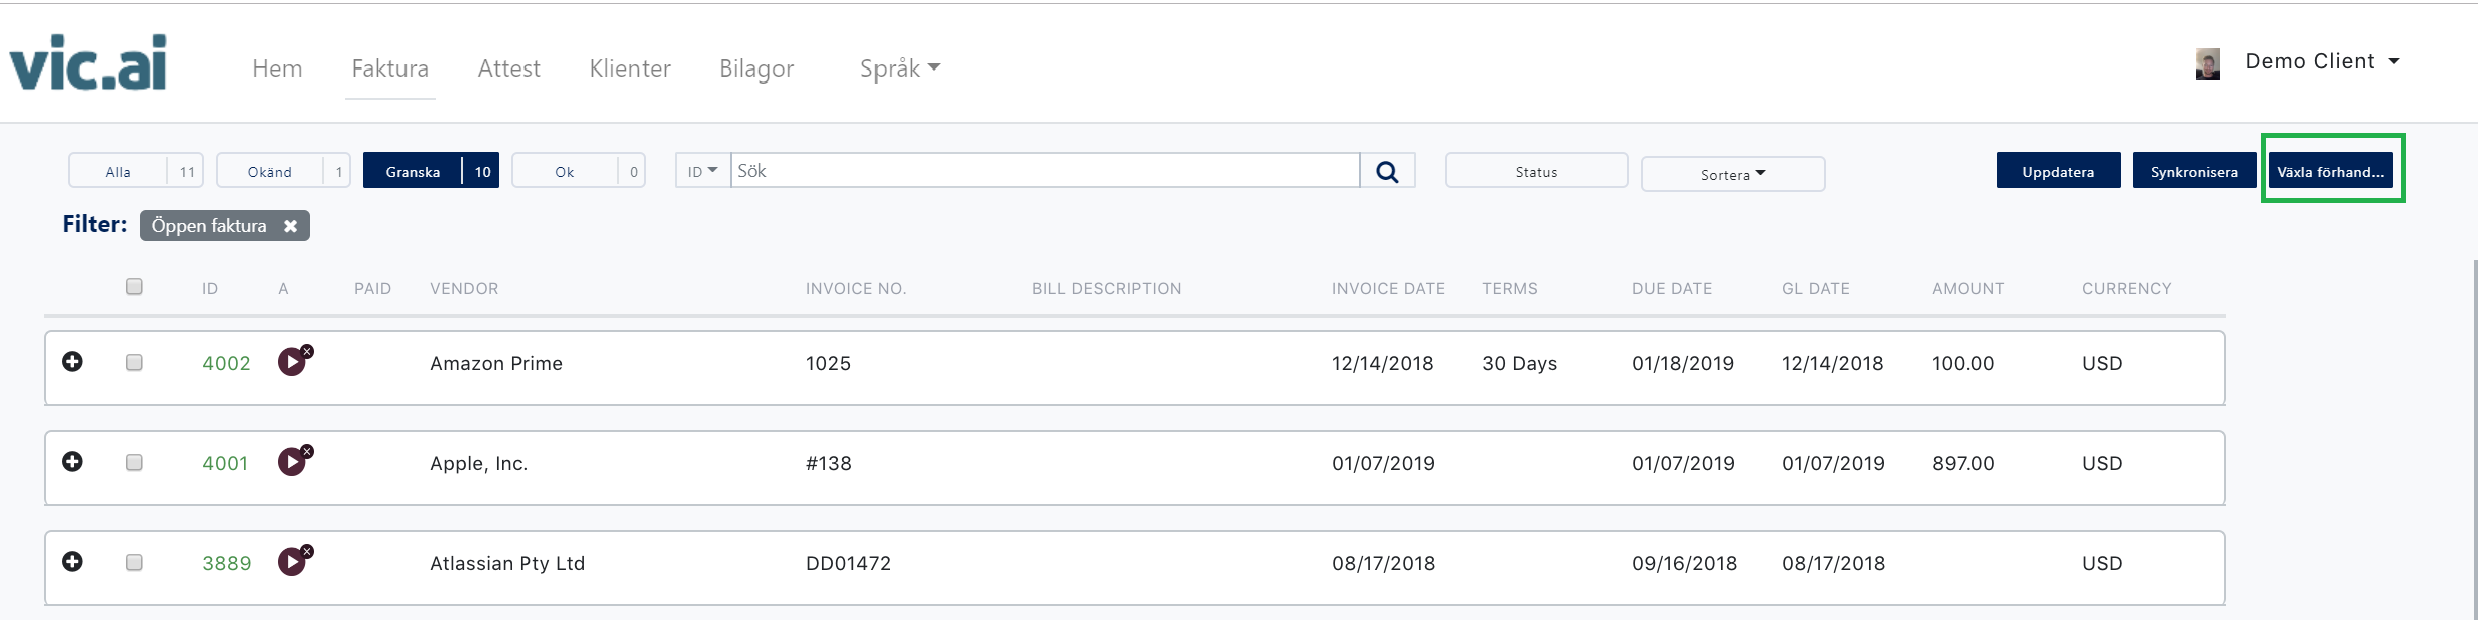 Vic_ai_Dashboard_Invoice_Overview_5.png